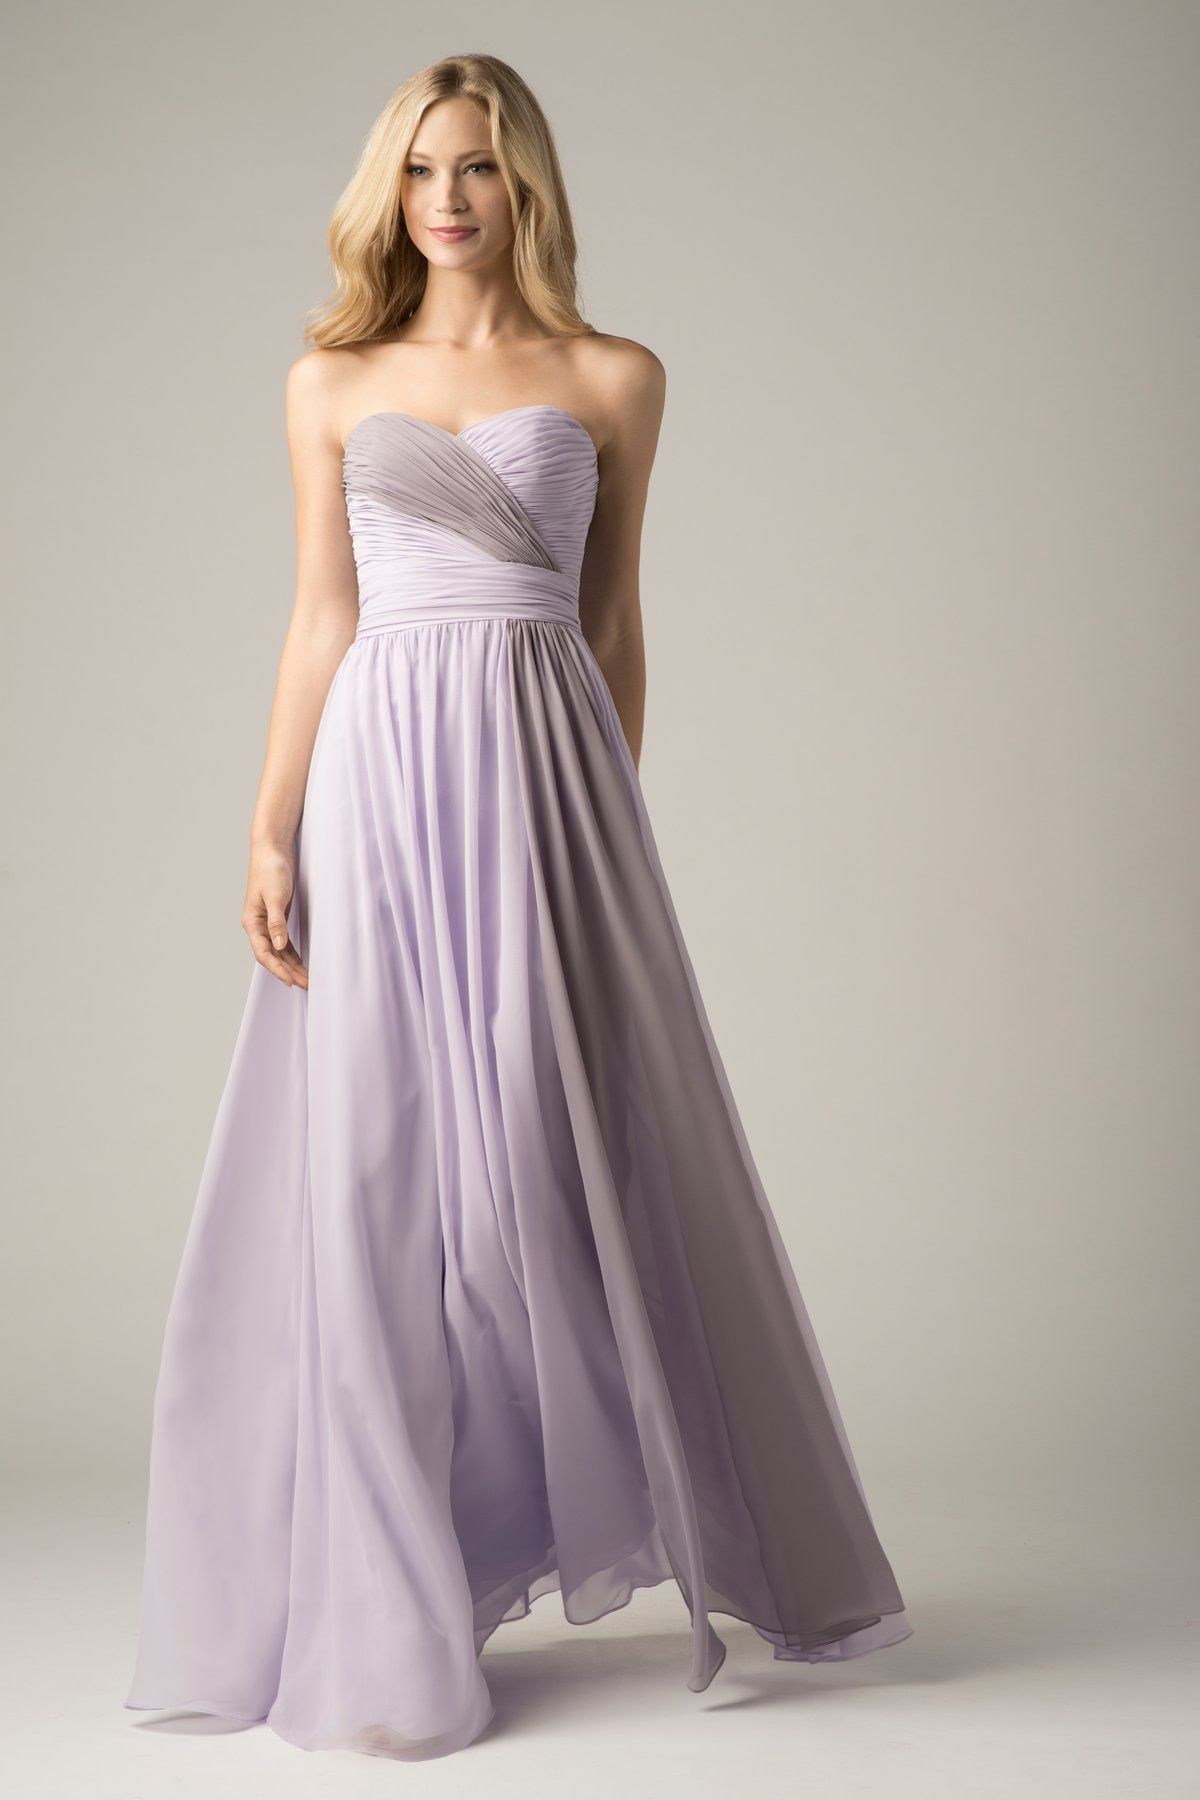 Wishesbridal lavender chiffon sweetheart floor length a line